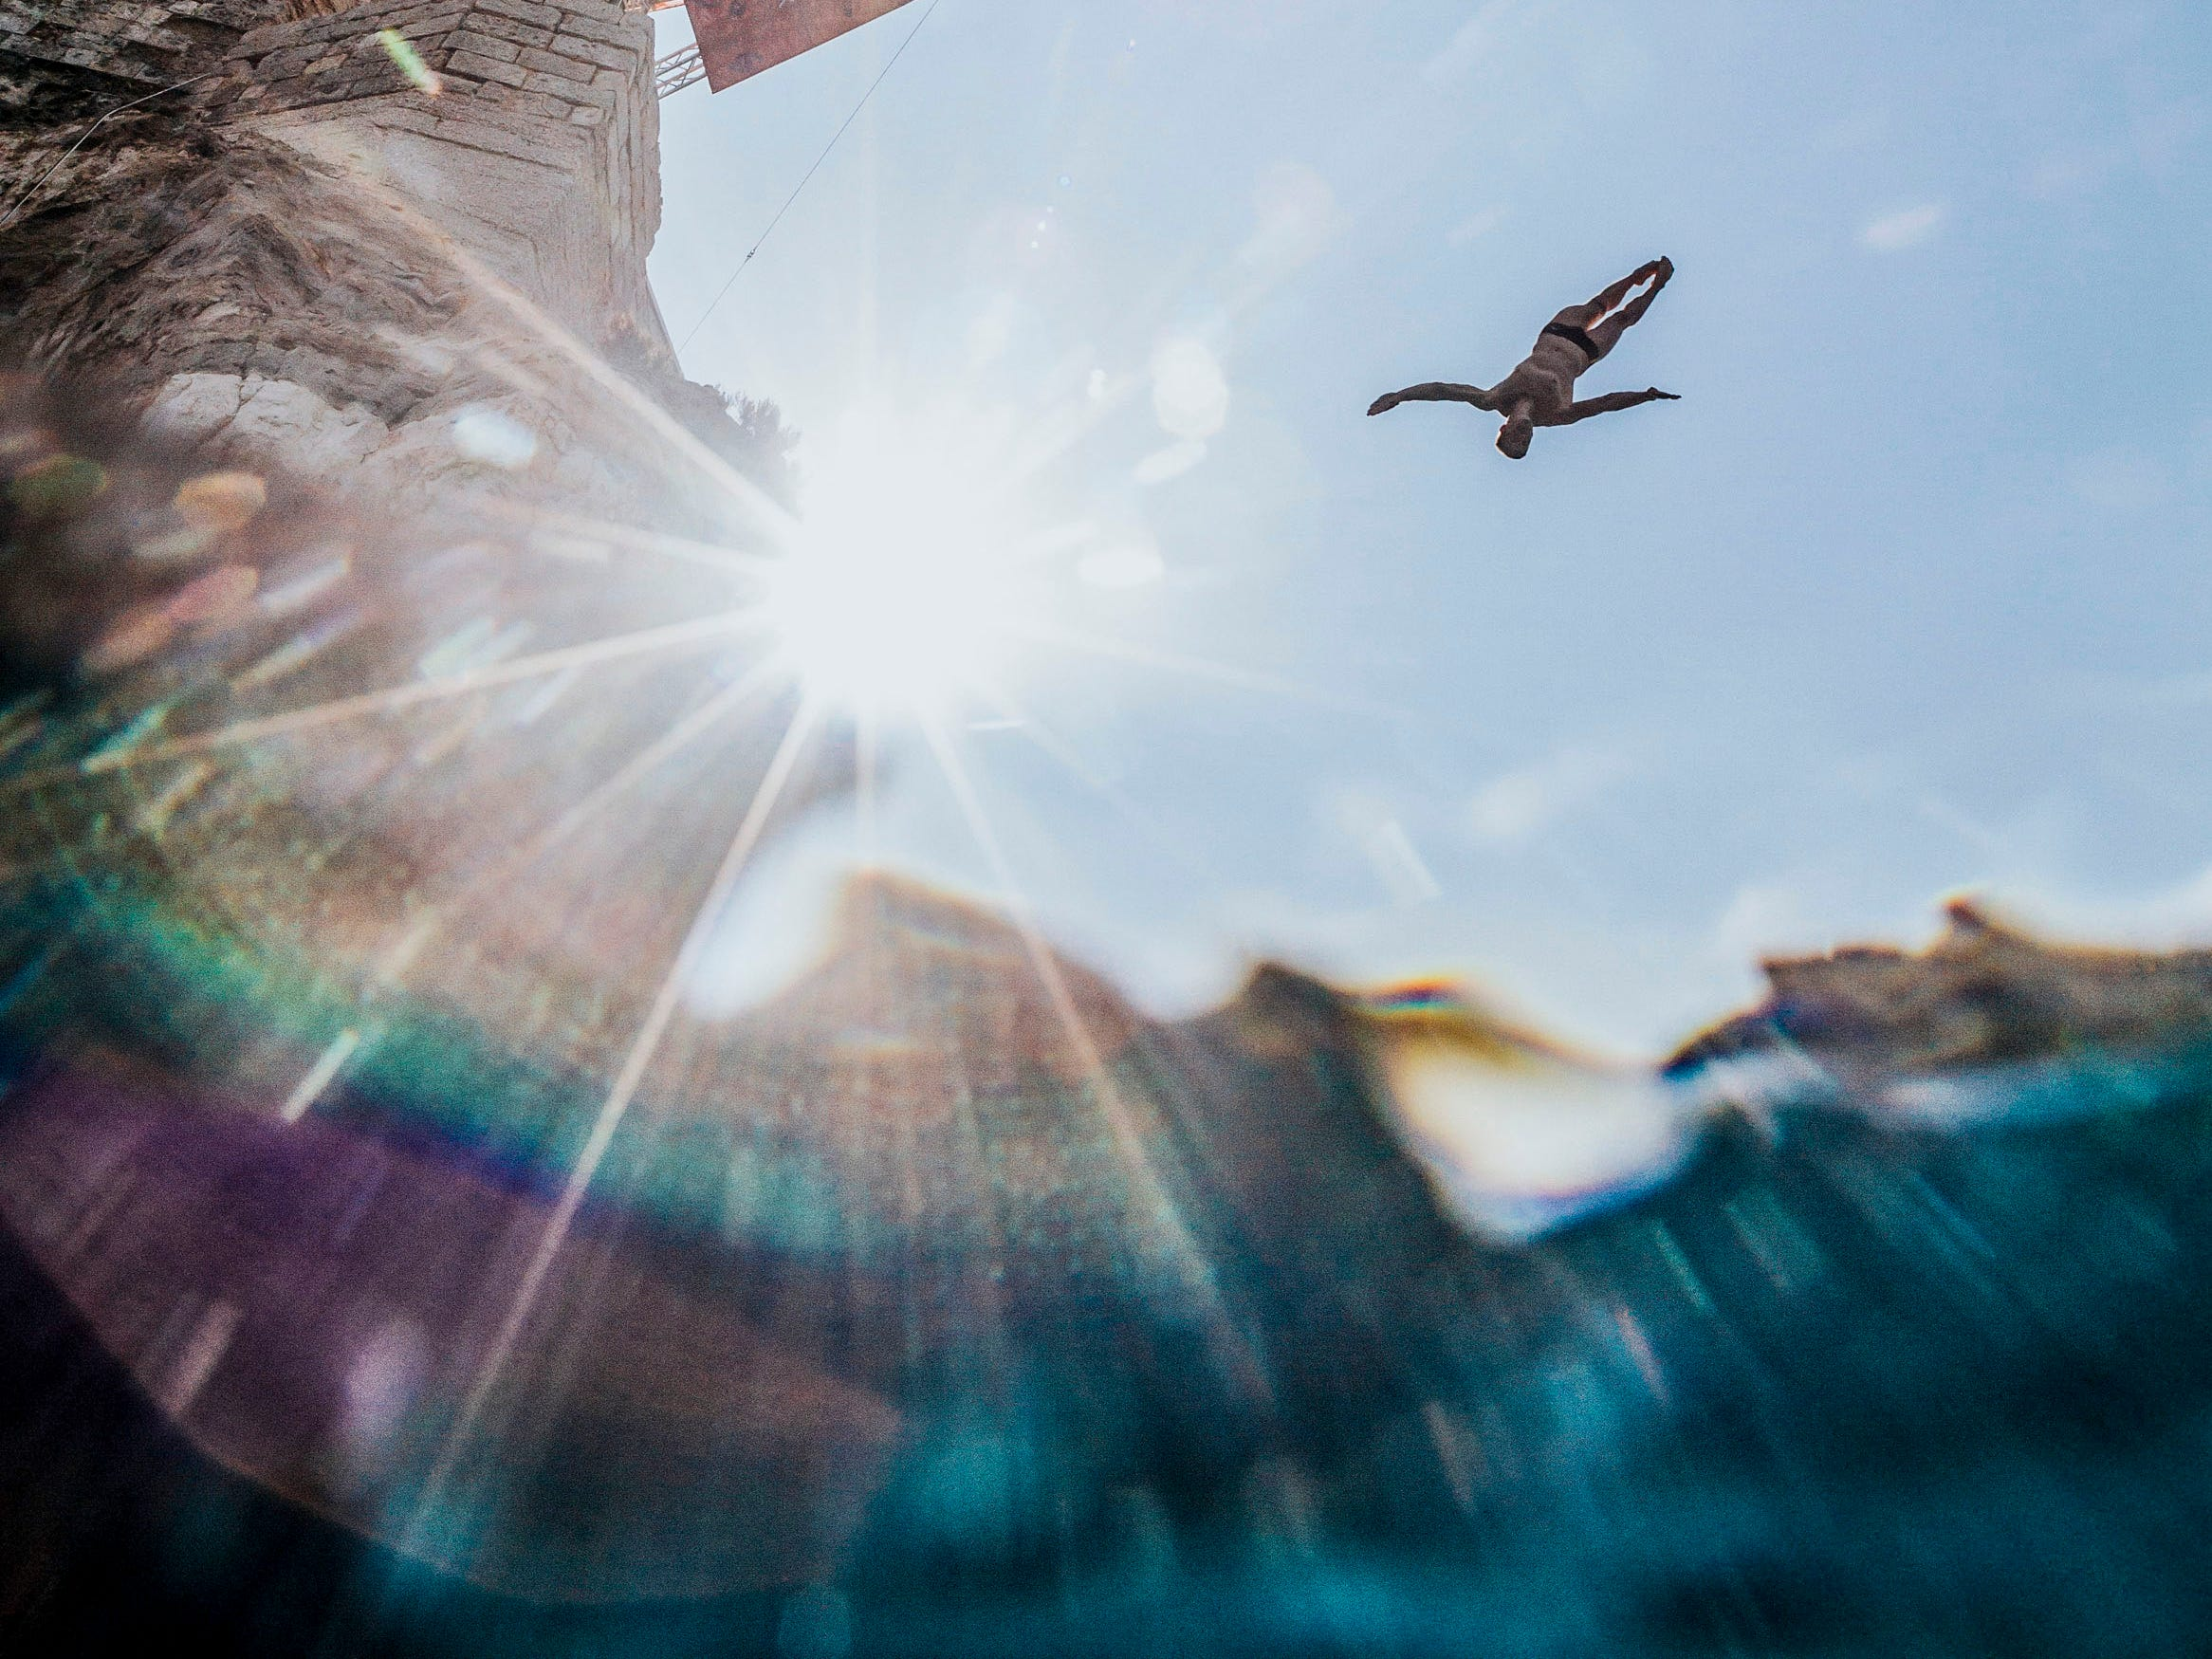 In this image provided by Red Bull, Andy Jones of the U.S. dives from the 27-meter platform during the last competition day of the seventh and final stop of the Red Bull Cliff Diving World Series on Sept. 23, 2018 at Polignano a Mare, Italy.